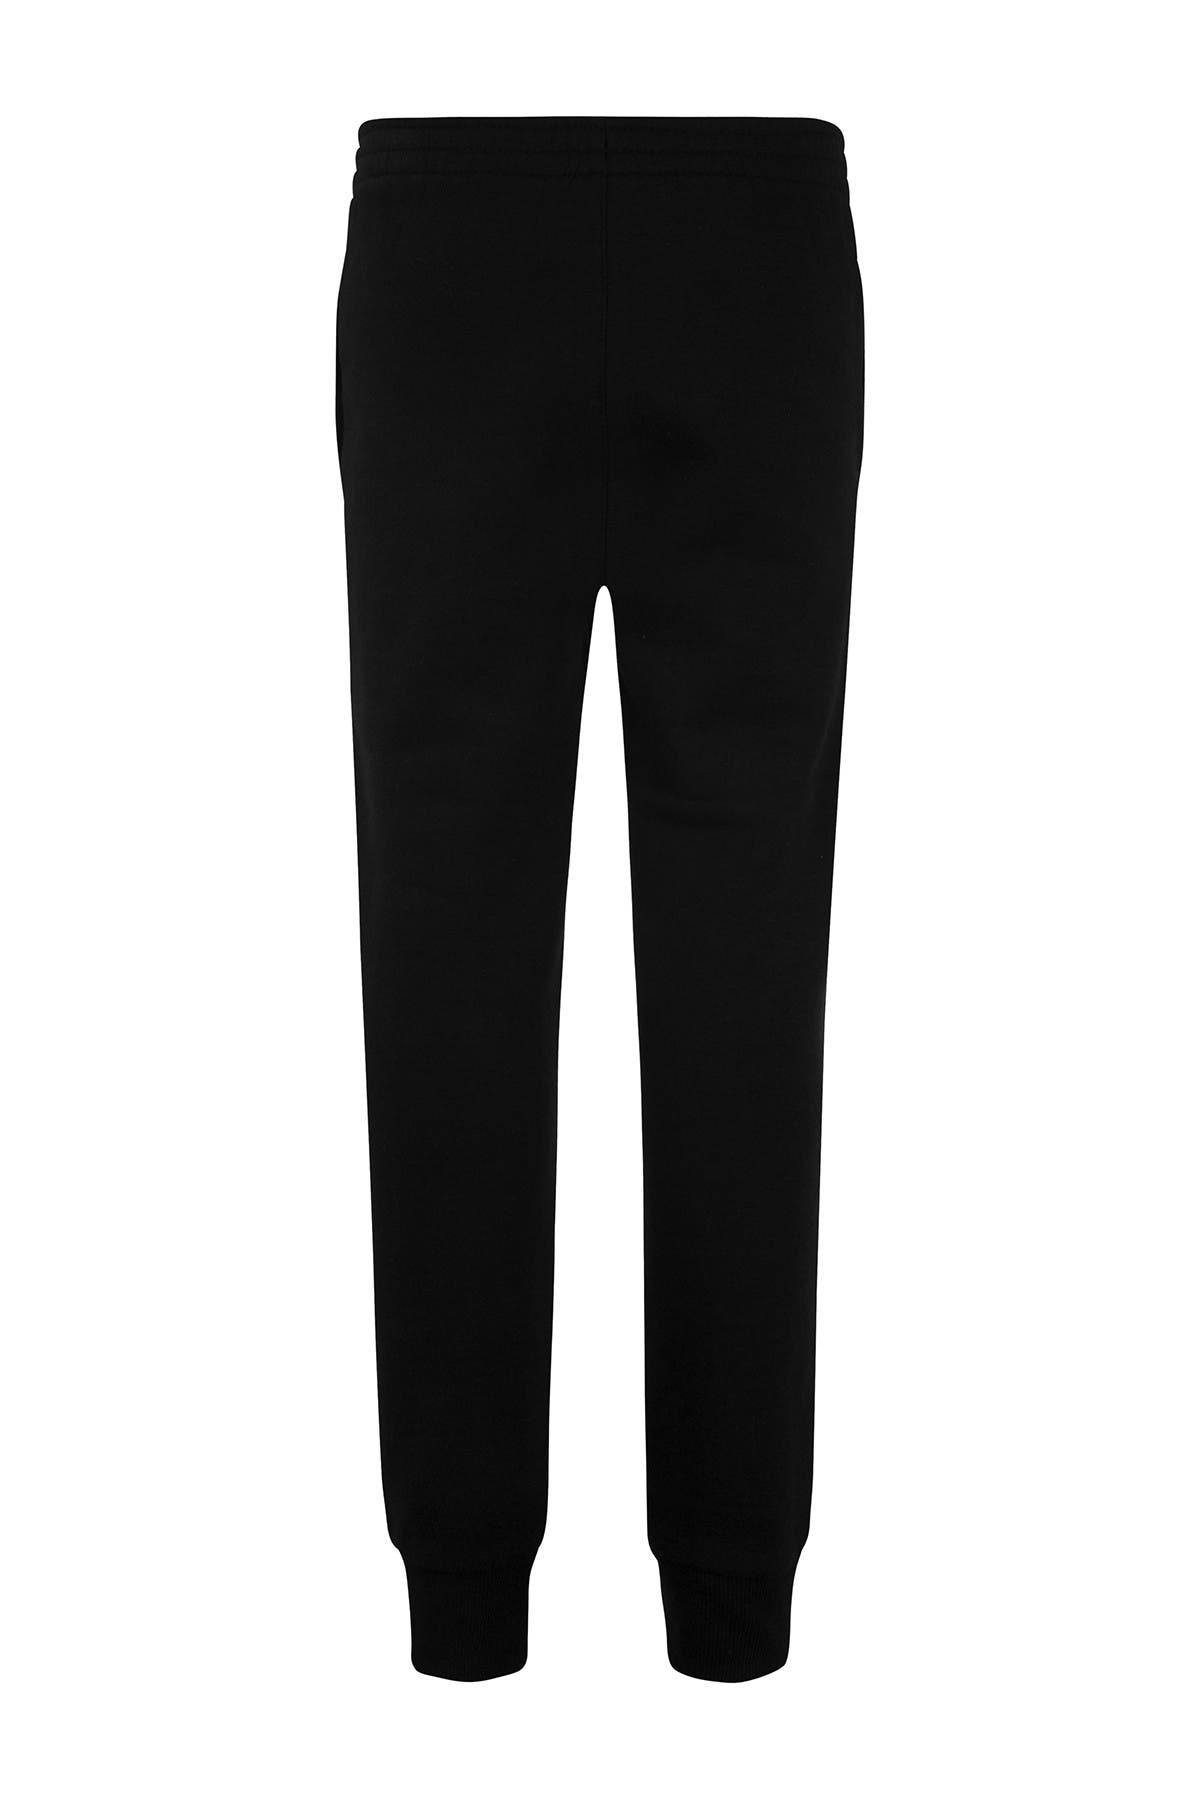 Image of Hurley Fleece One and Only Joggers